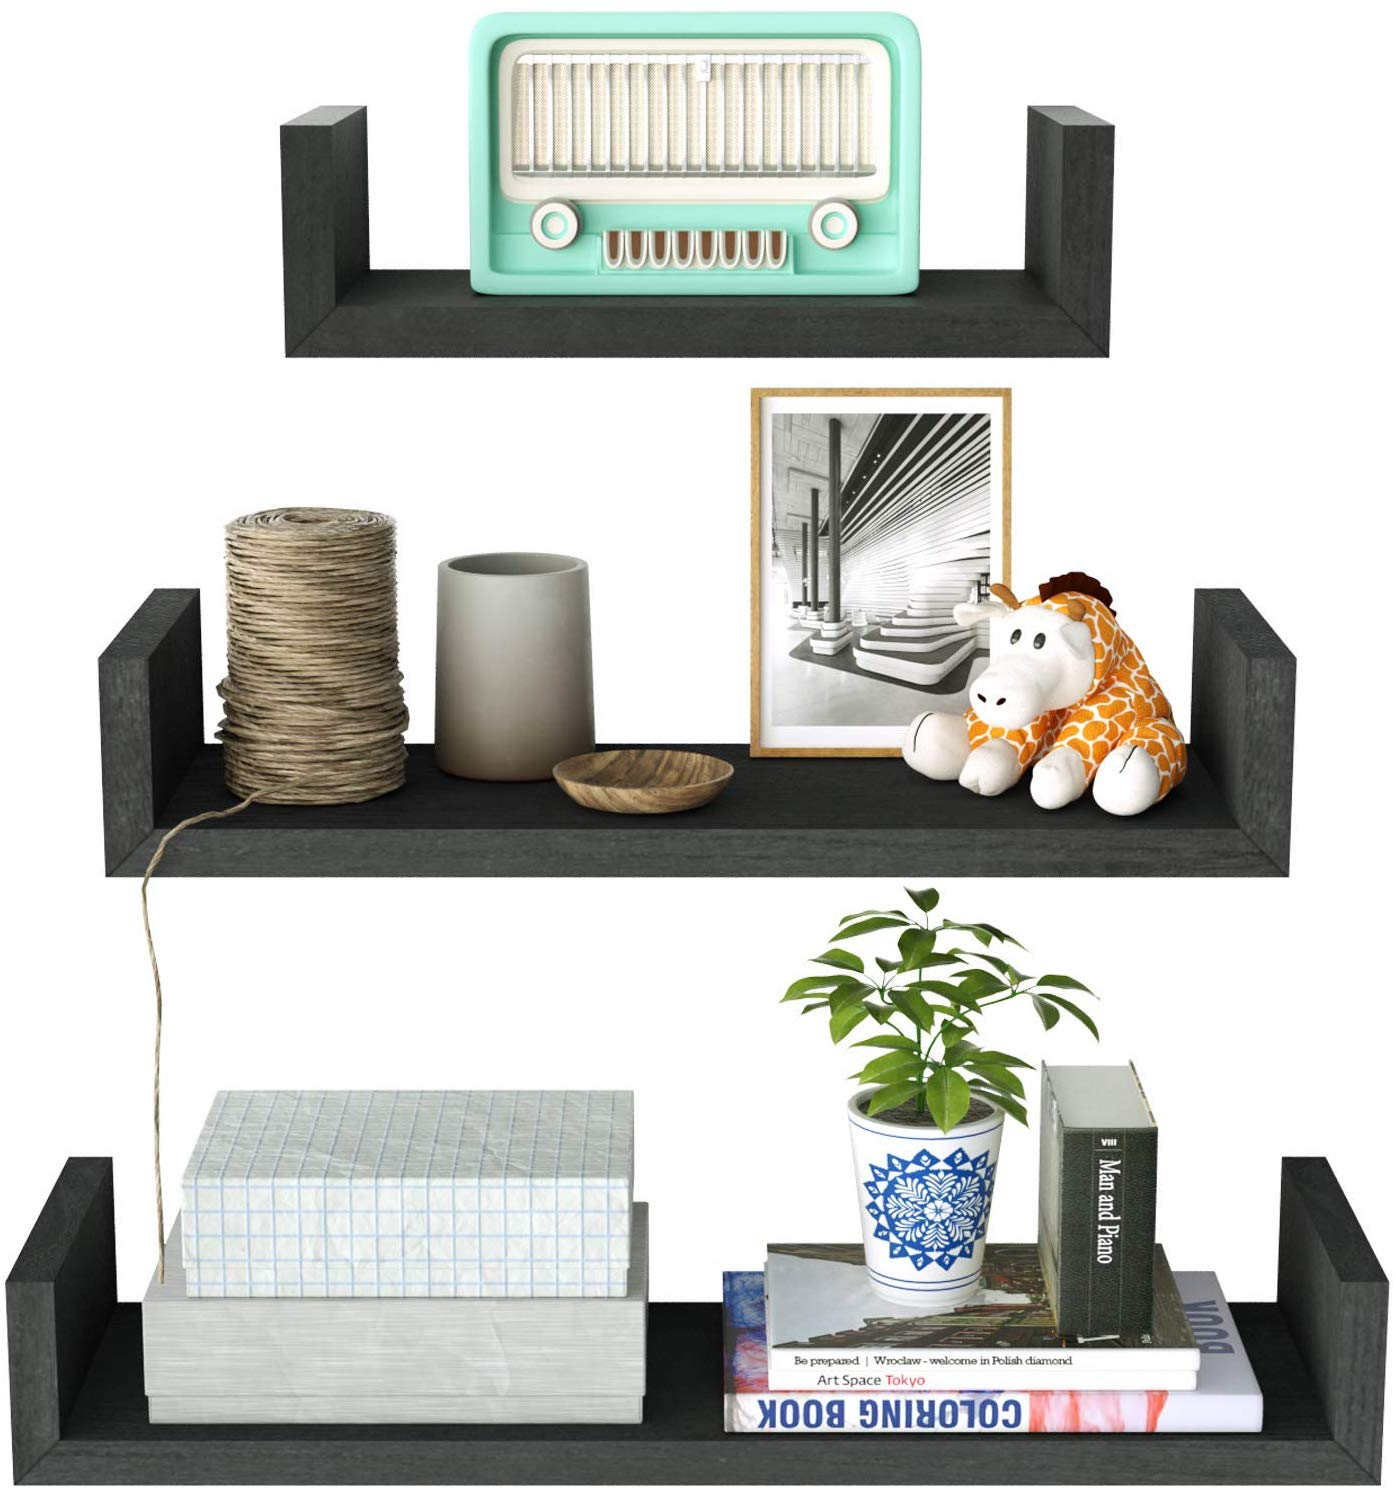 Floating Shelves by SRIWATANA